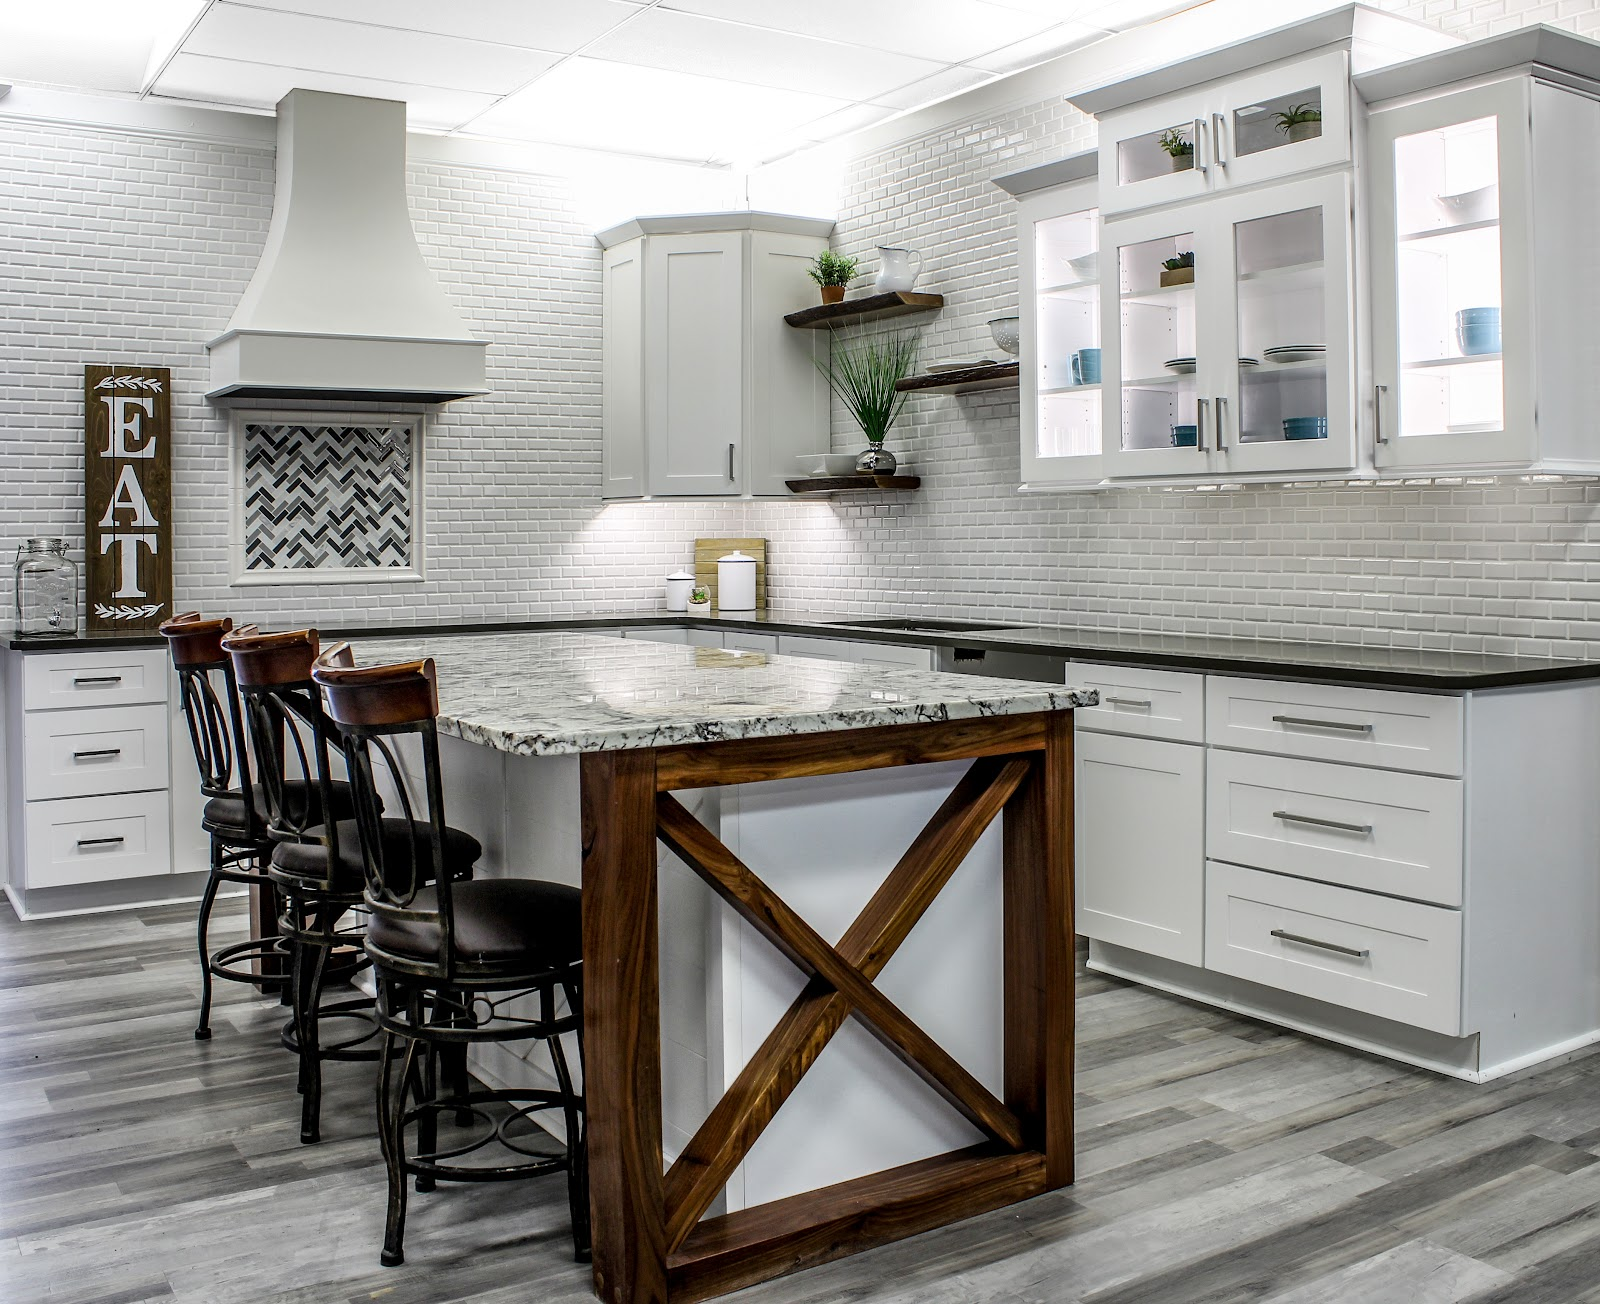 showroom featuring grey flooring, white shaker cabinets and granite countertops with black and white coloring